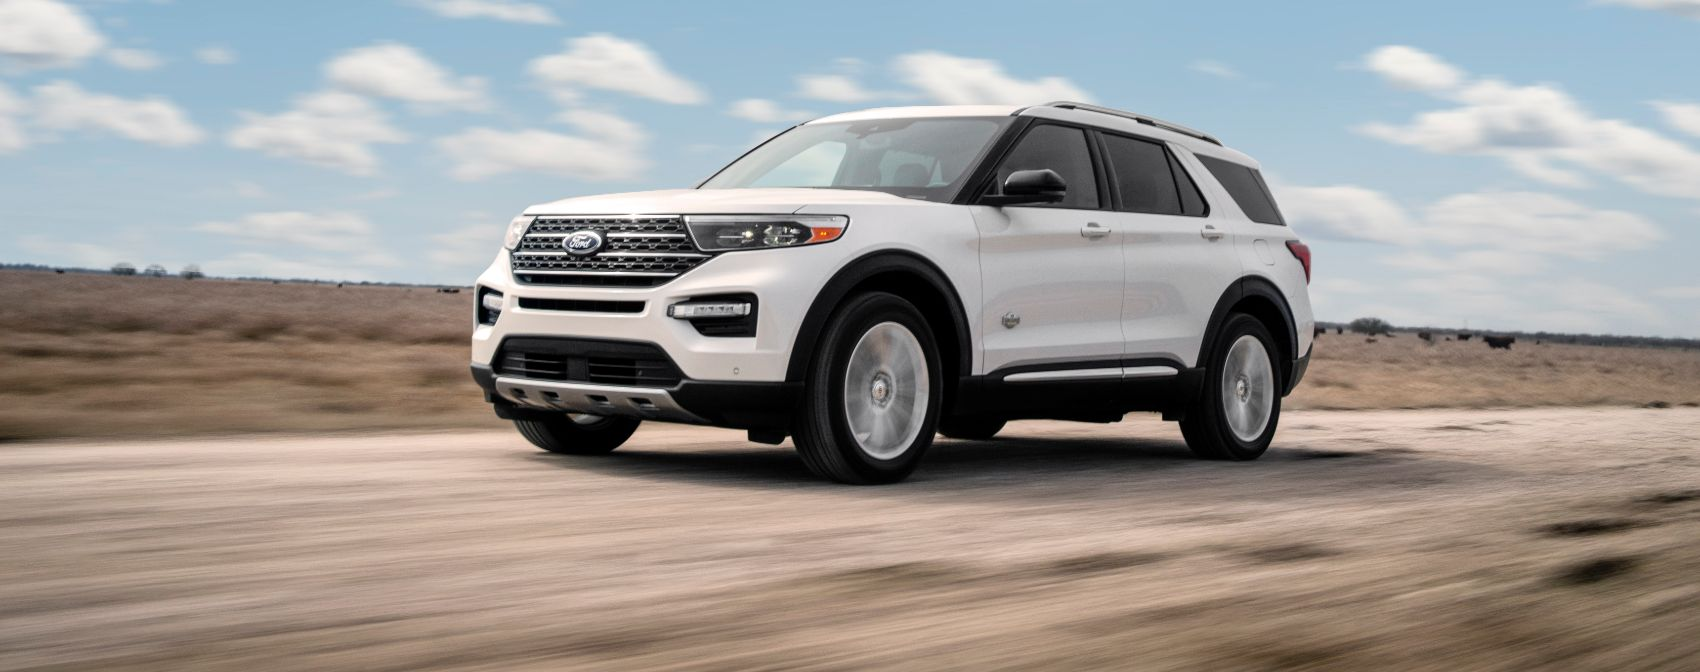 Ford Explorer King Ranch Debuts With Swanky Interior & New Tech Updates